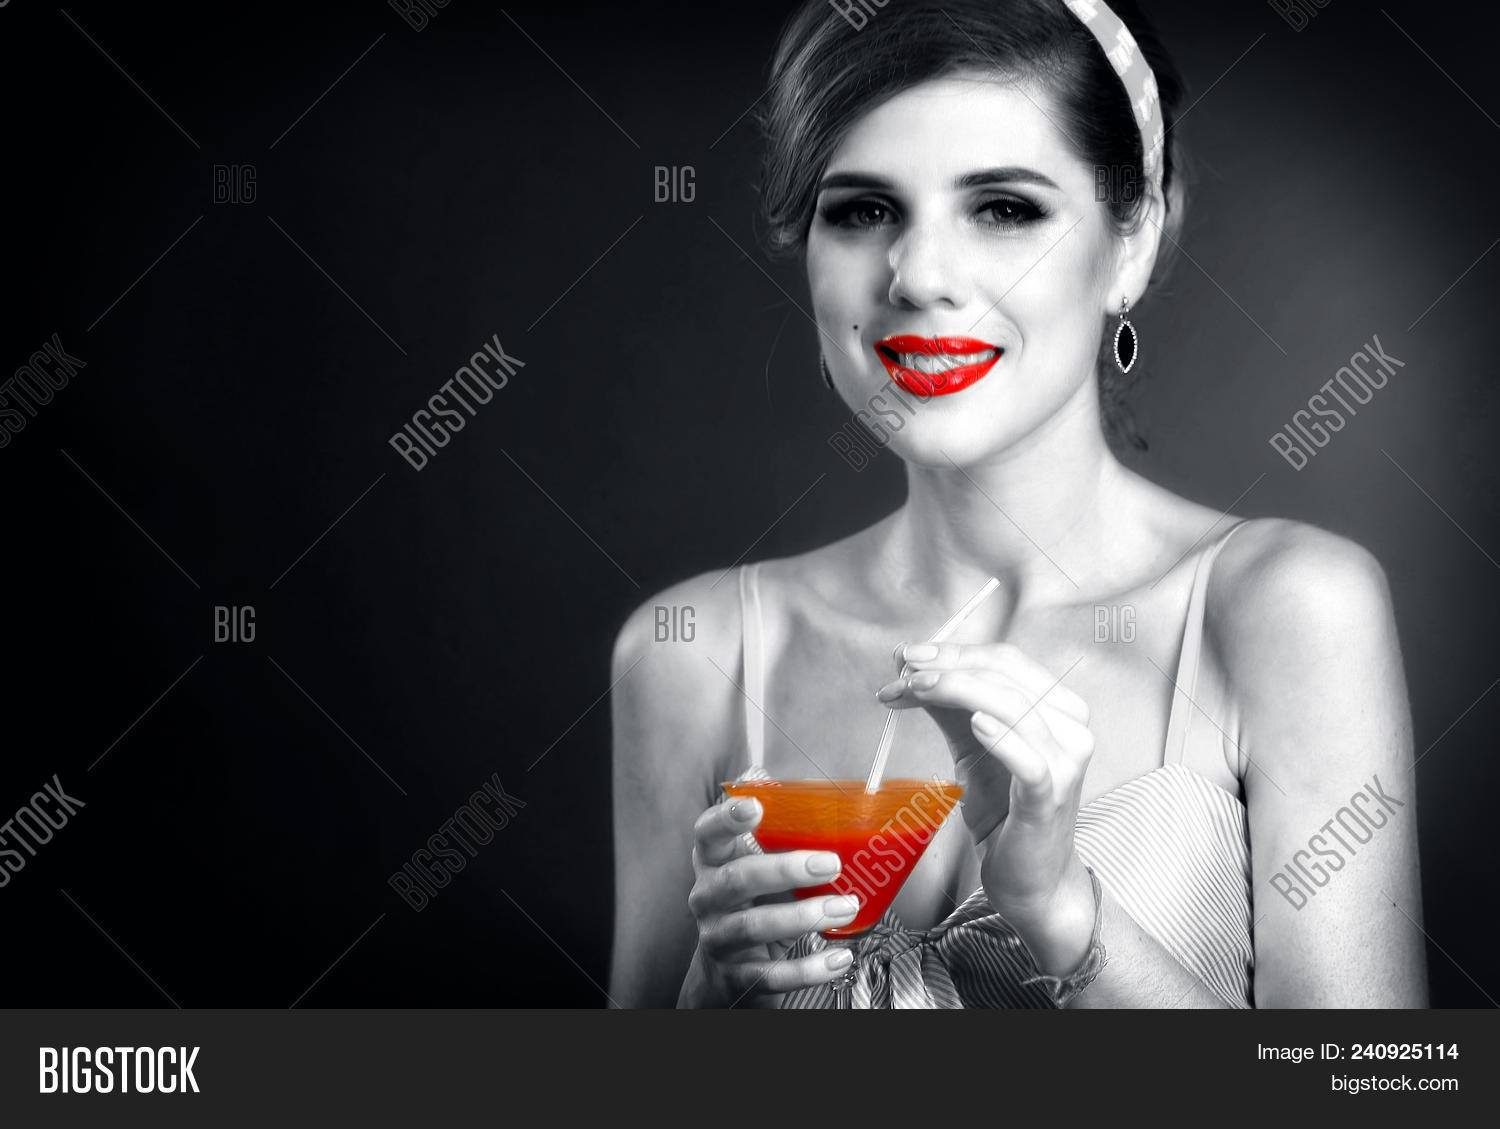 adult,attractive,beautiful,beauty,black and white,bloody mary,classic,cocktail,color accents,dancing,drink,fashion,female,fun,girl,glass,hair style,hairstyle,happy,lady,lips,make,makeup,martini,martini glass,old-fashioned,party,photos,pin up,pin-up,pinup,portrait,pretty,red,retro,retro woman,sexy,style,vintage,woman,young